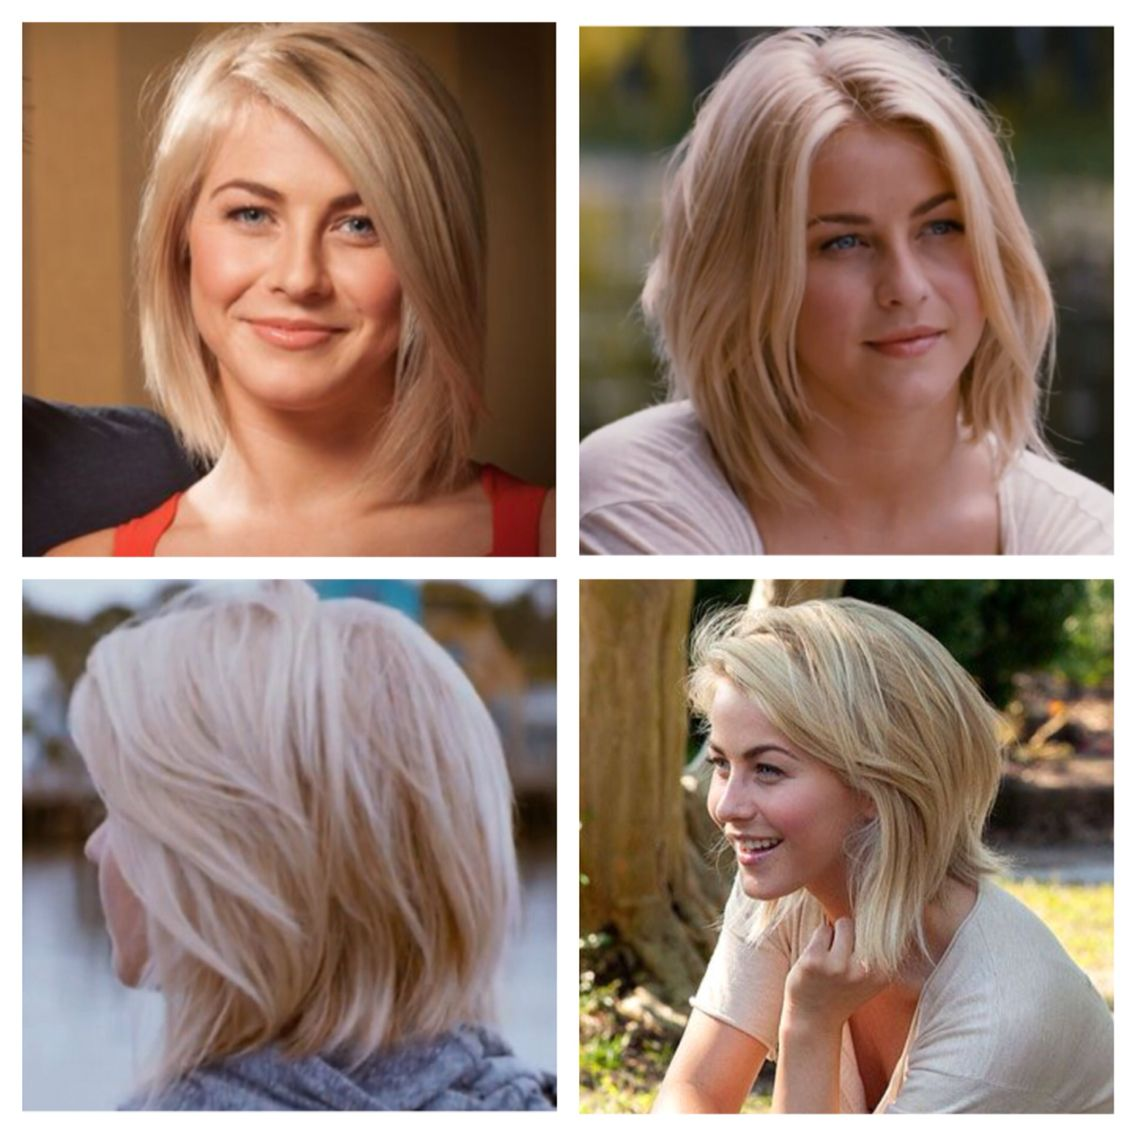 Julianne Hough In Safe Haven May Be Too Short Lookin Good